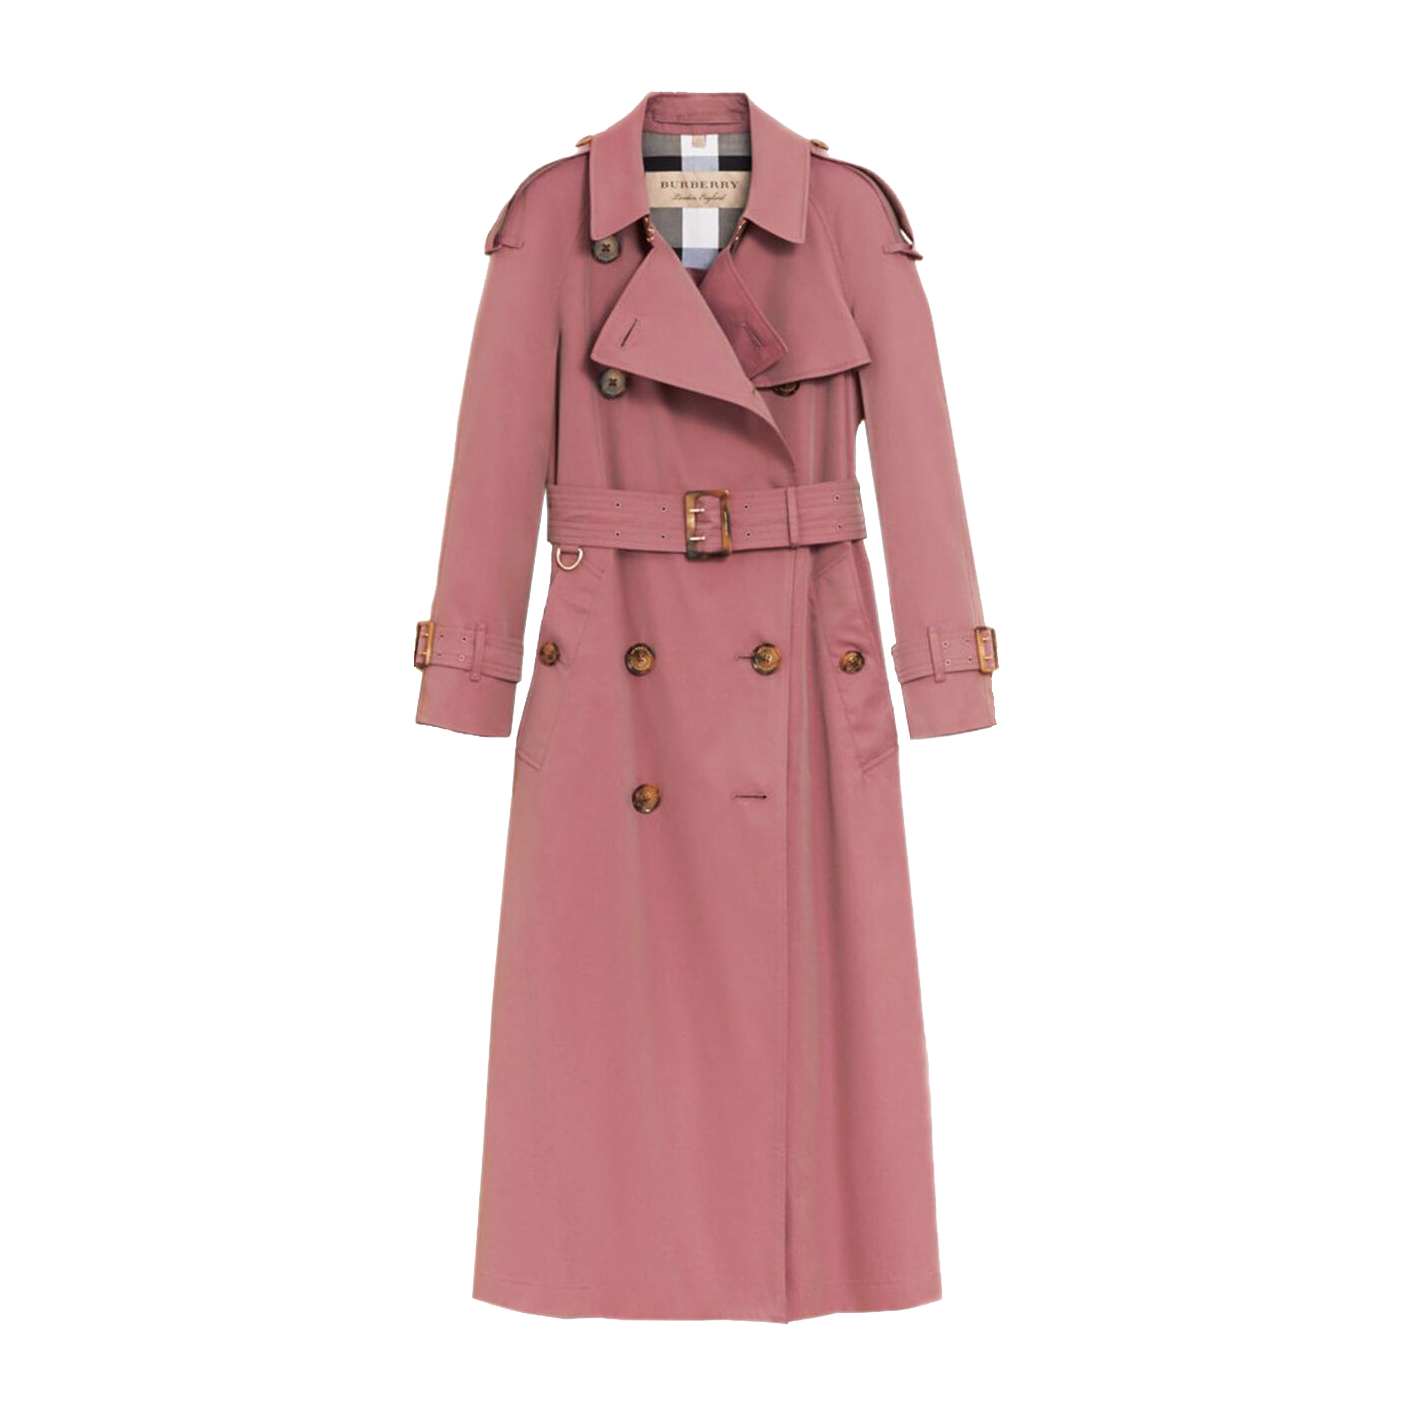 Burberry Tropical Gabardine Trench Coat in Antique Rose